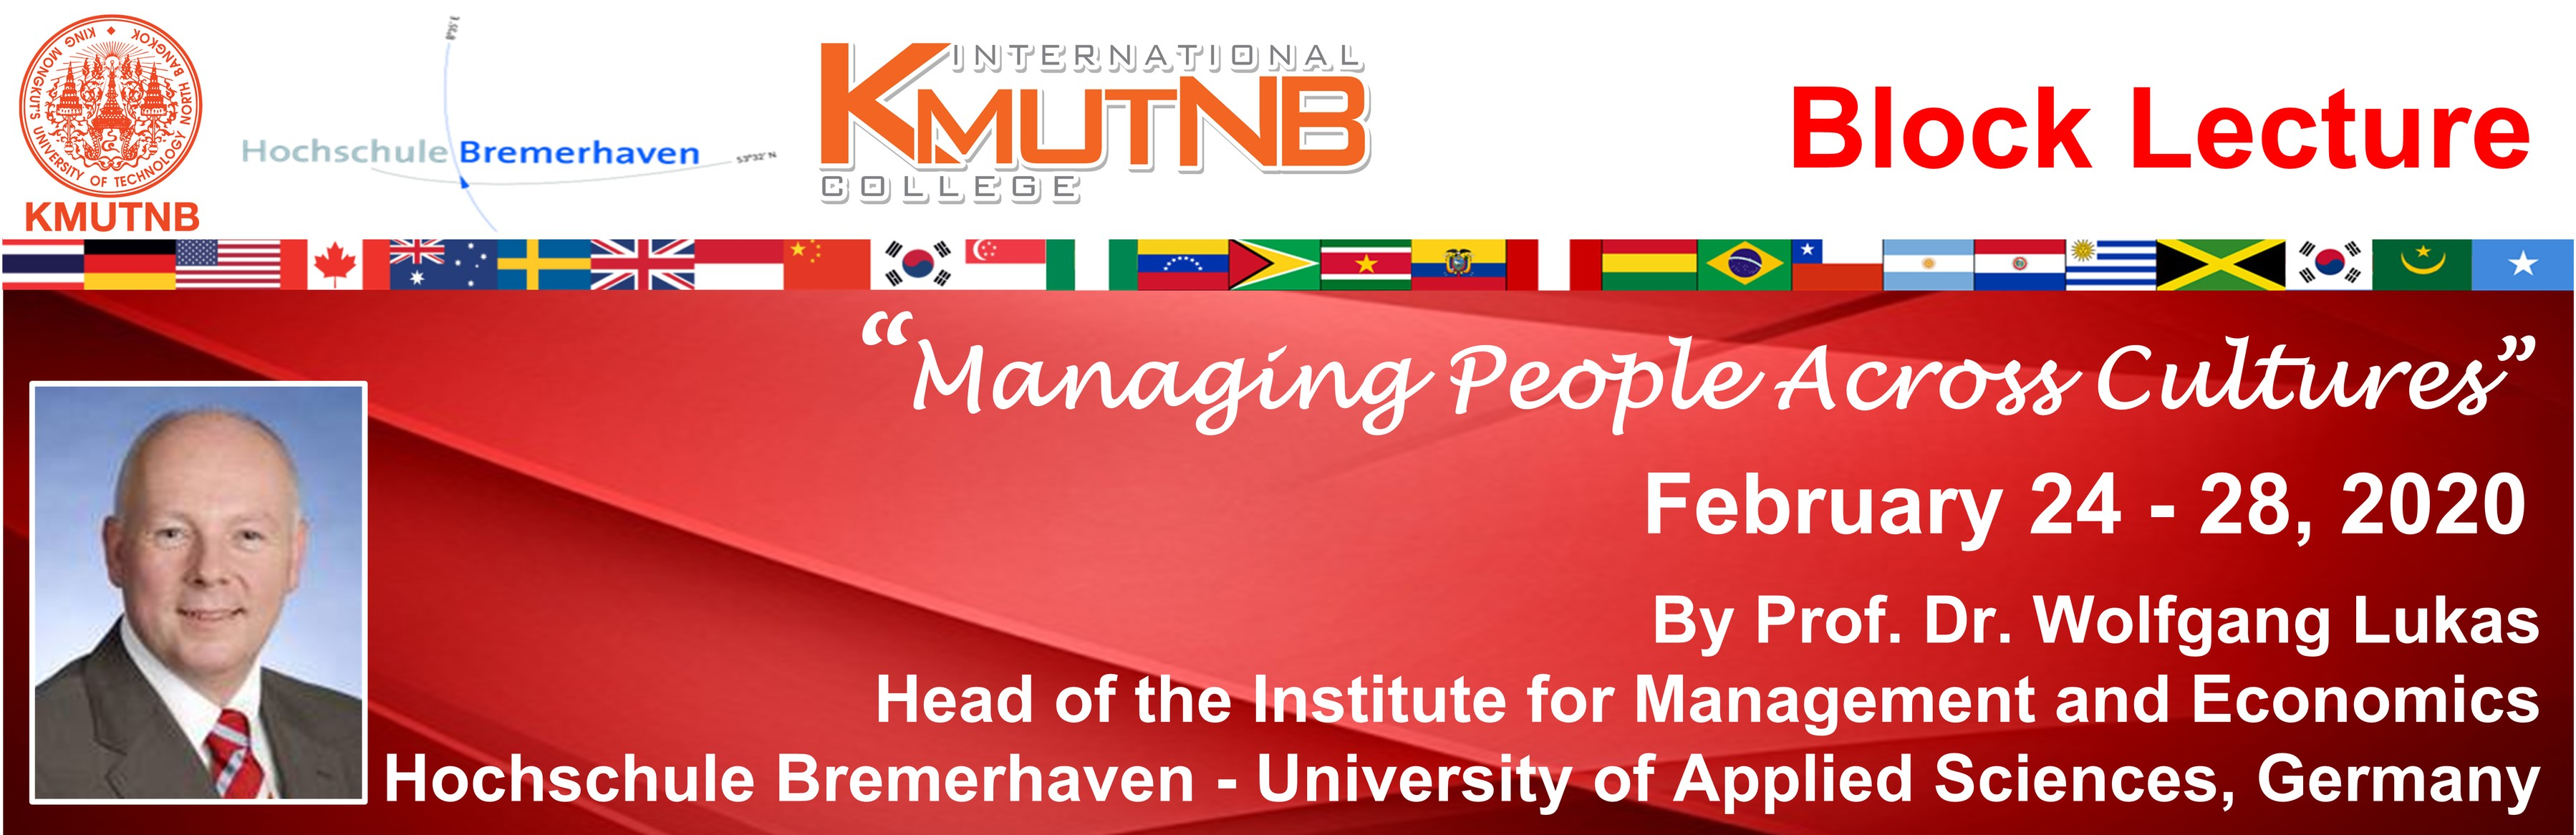 Block Lecture 2020-: Managing People Across Cultures